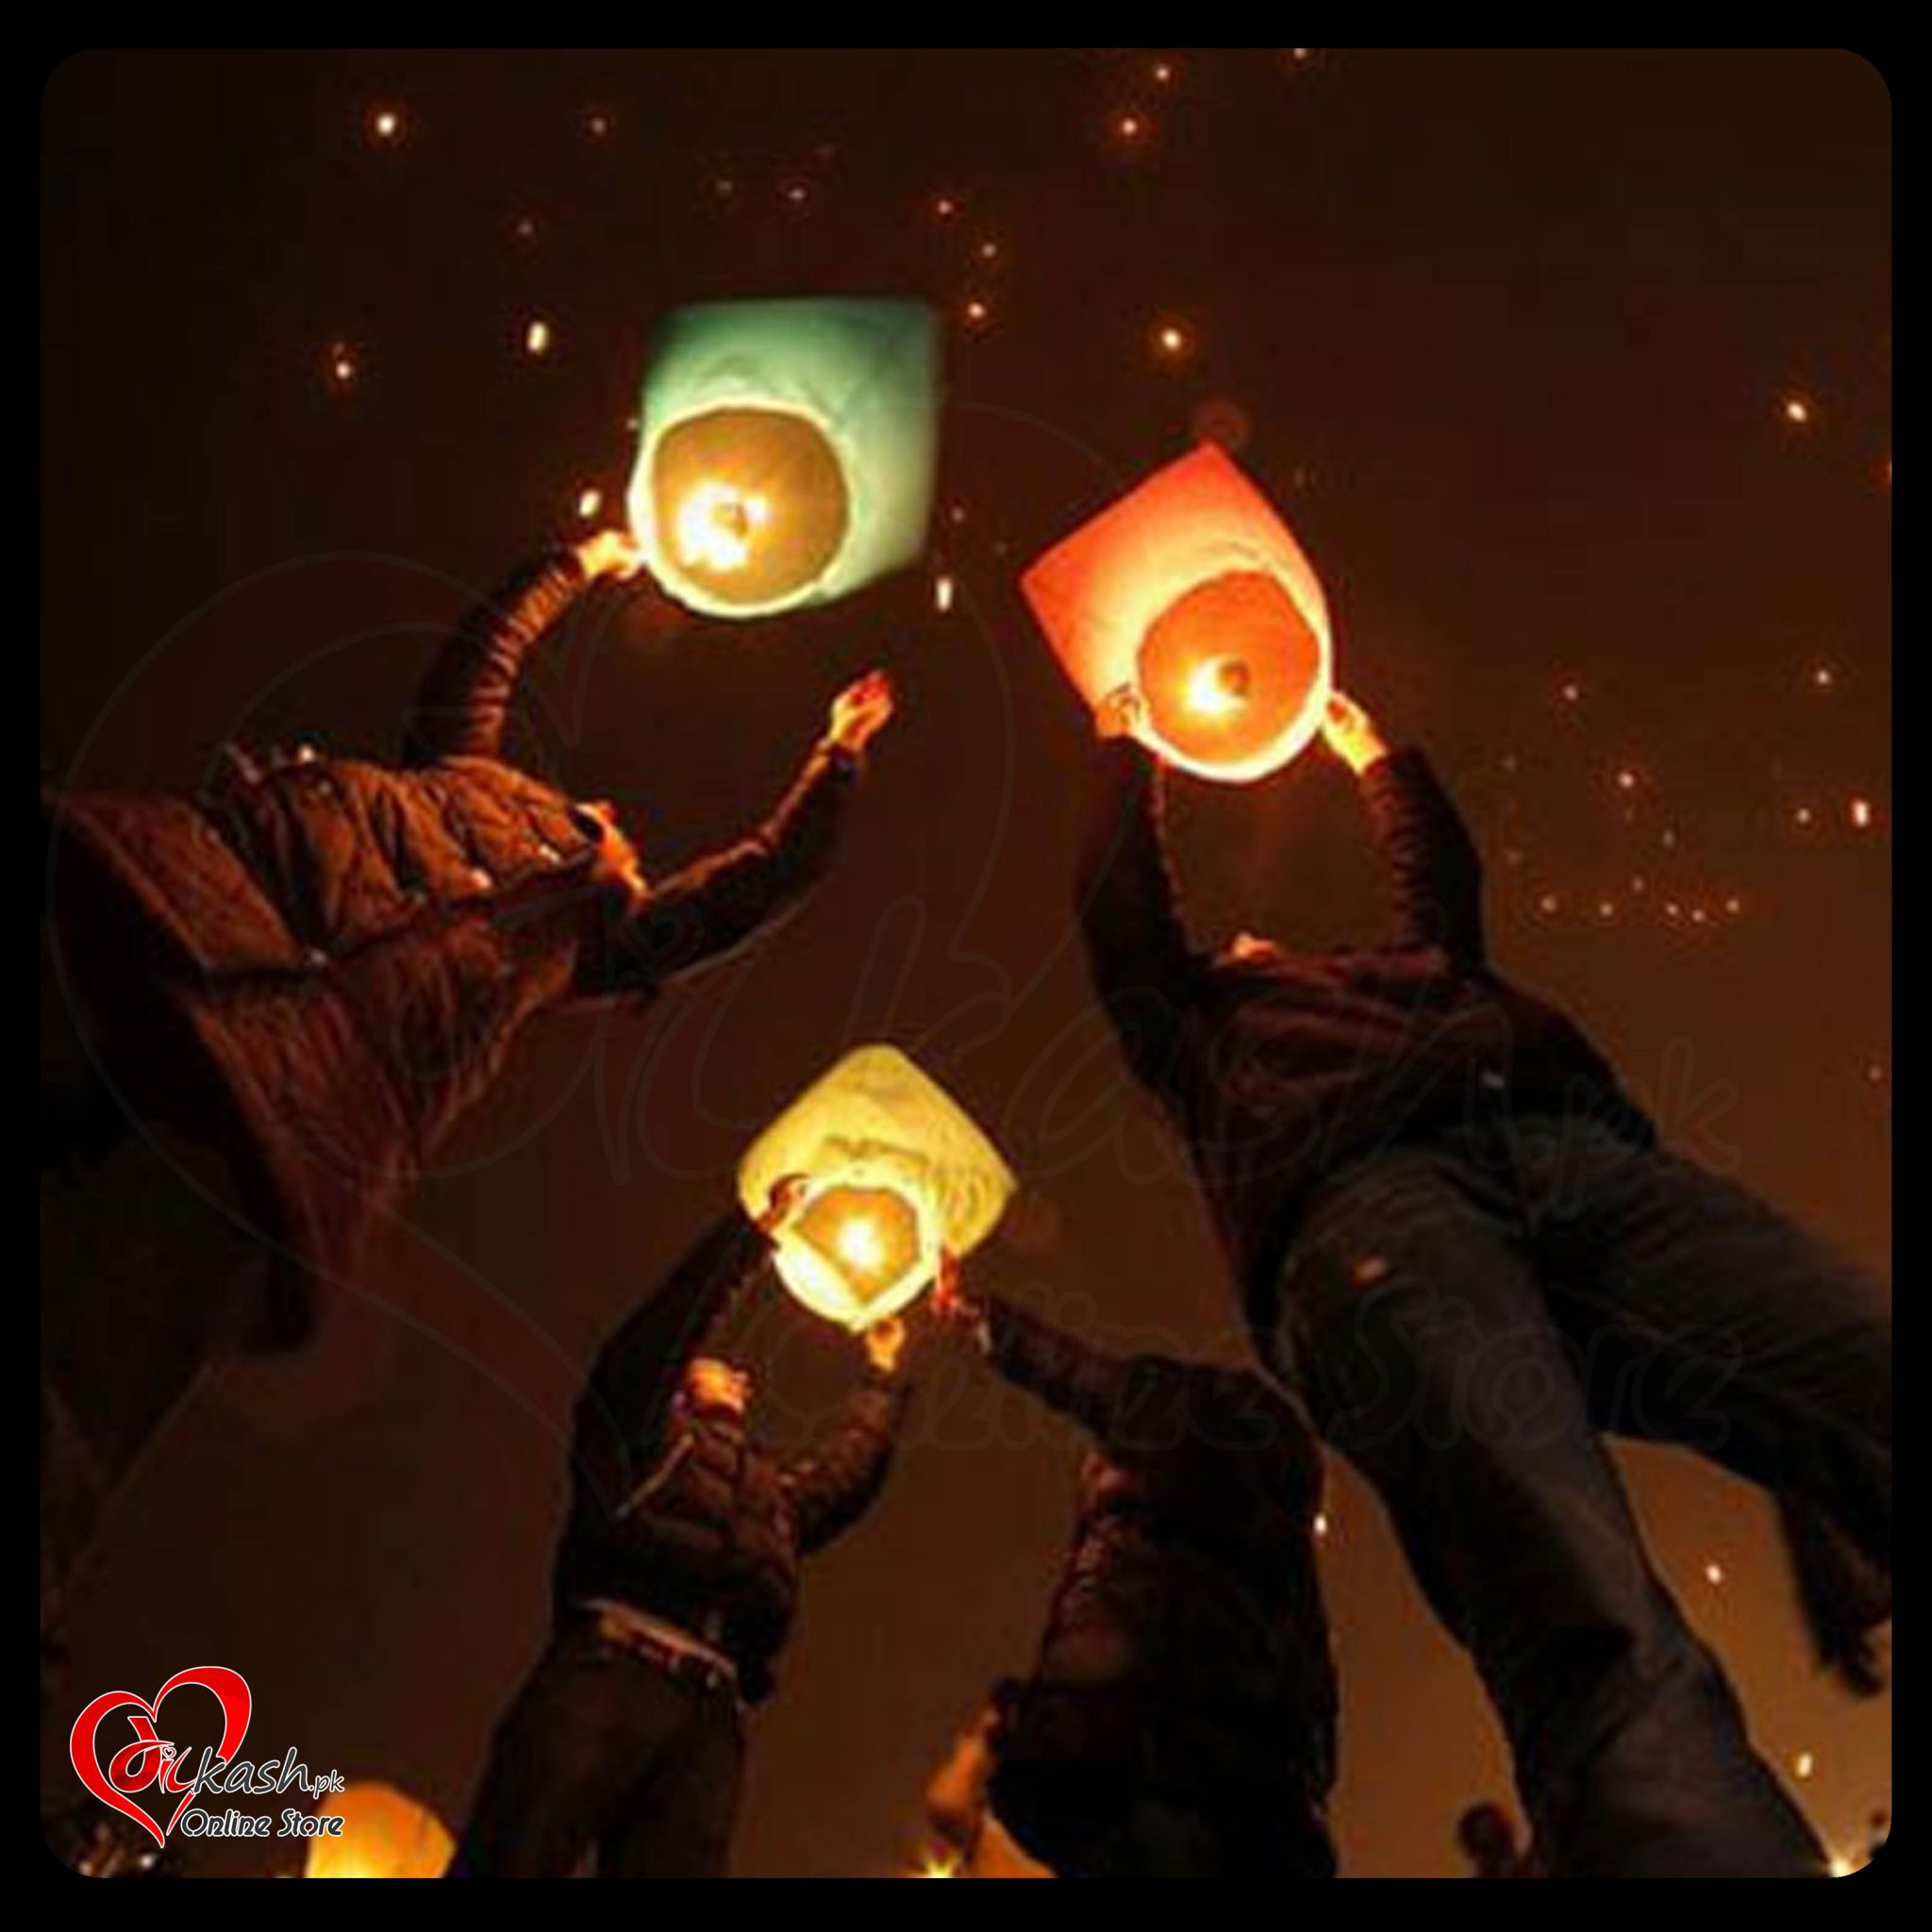 Sky Lanterns Chinese Lanterns Price in Pakistan - ITEM NO 4914 - 6545632456466